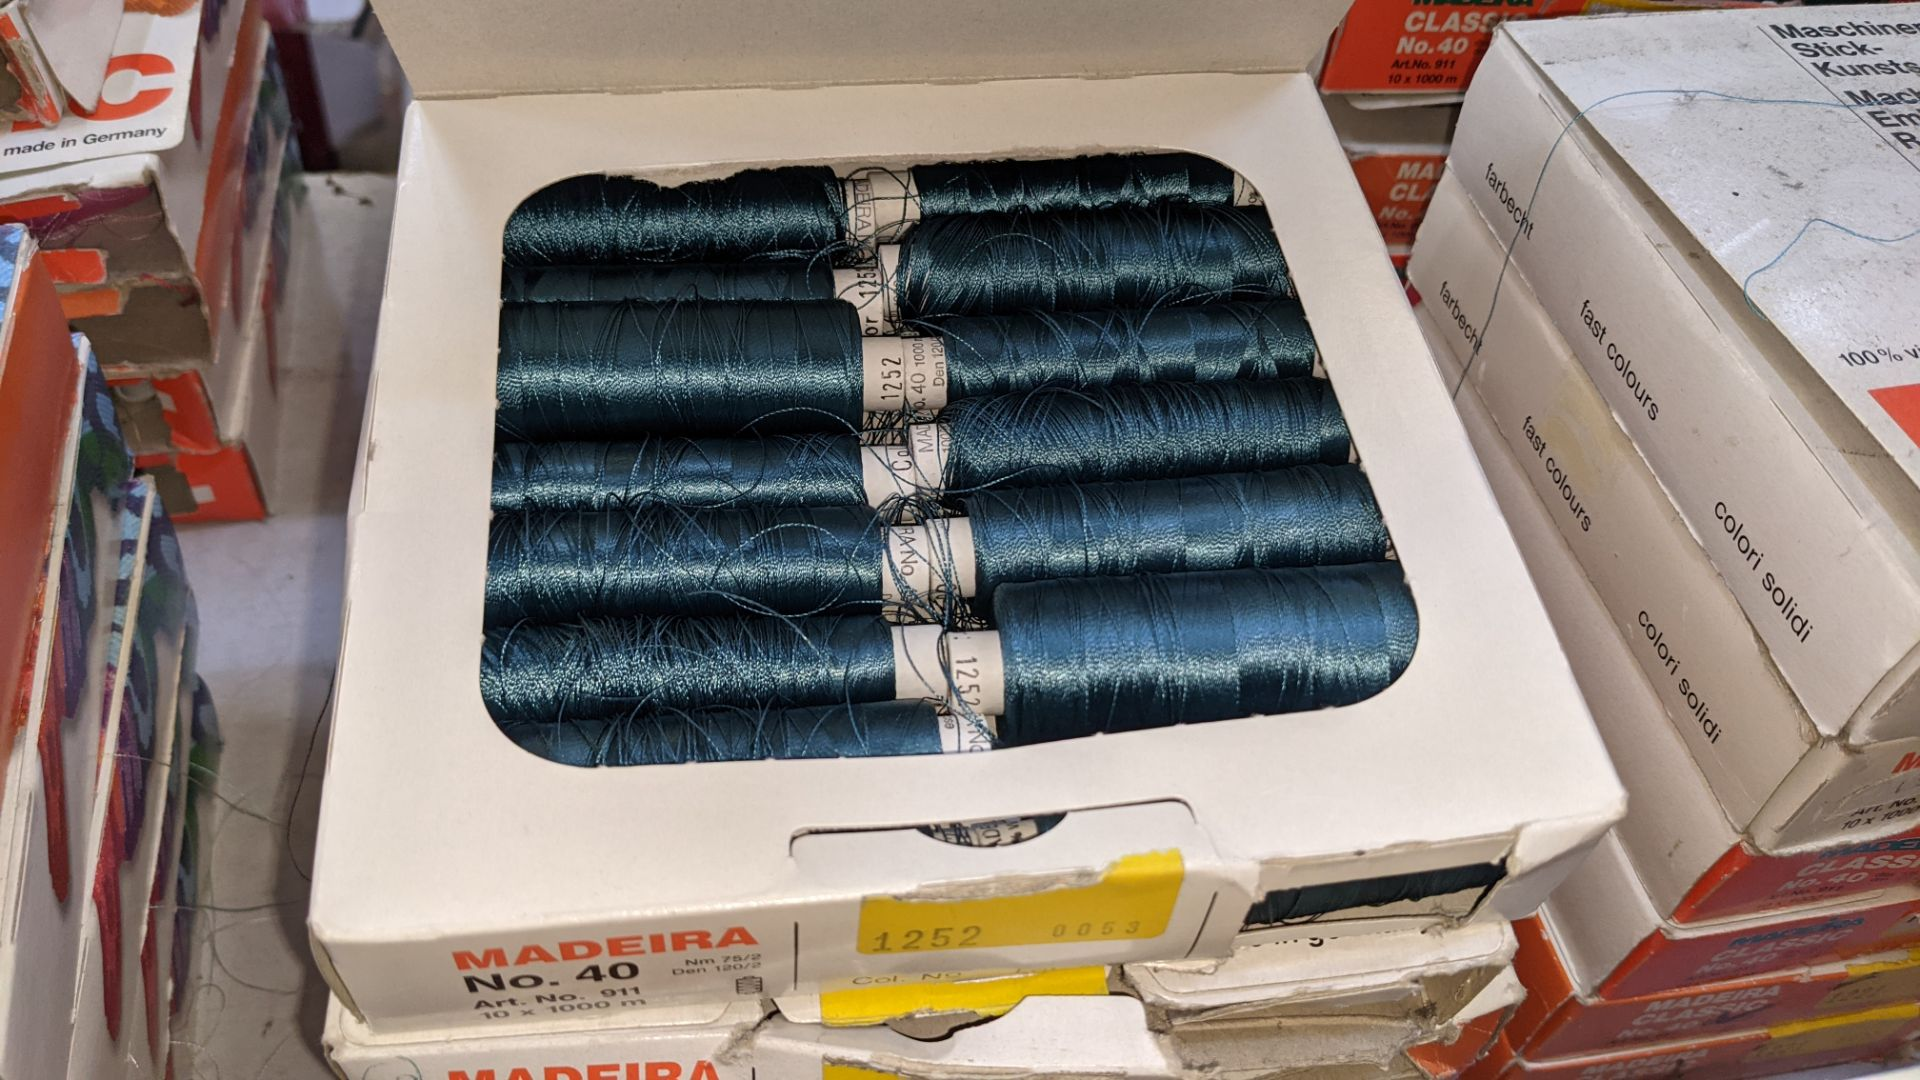 30 boxes of Madeira Classic No. 40 rayon embroidery thread - Image 11 of 12